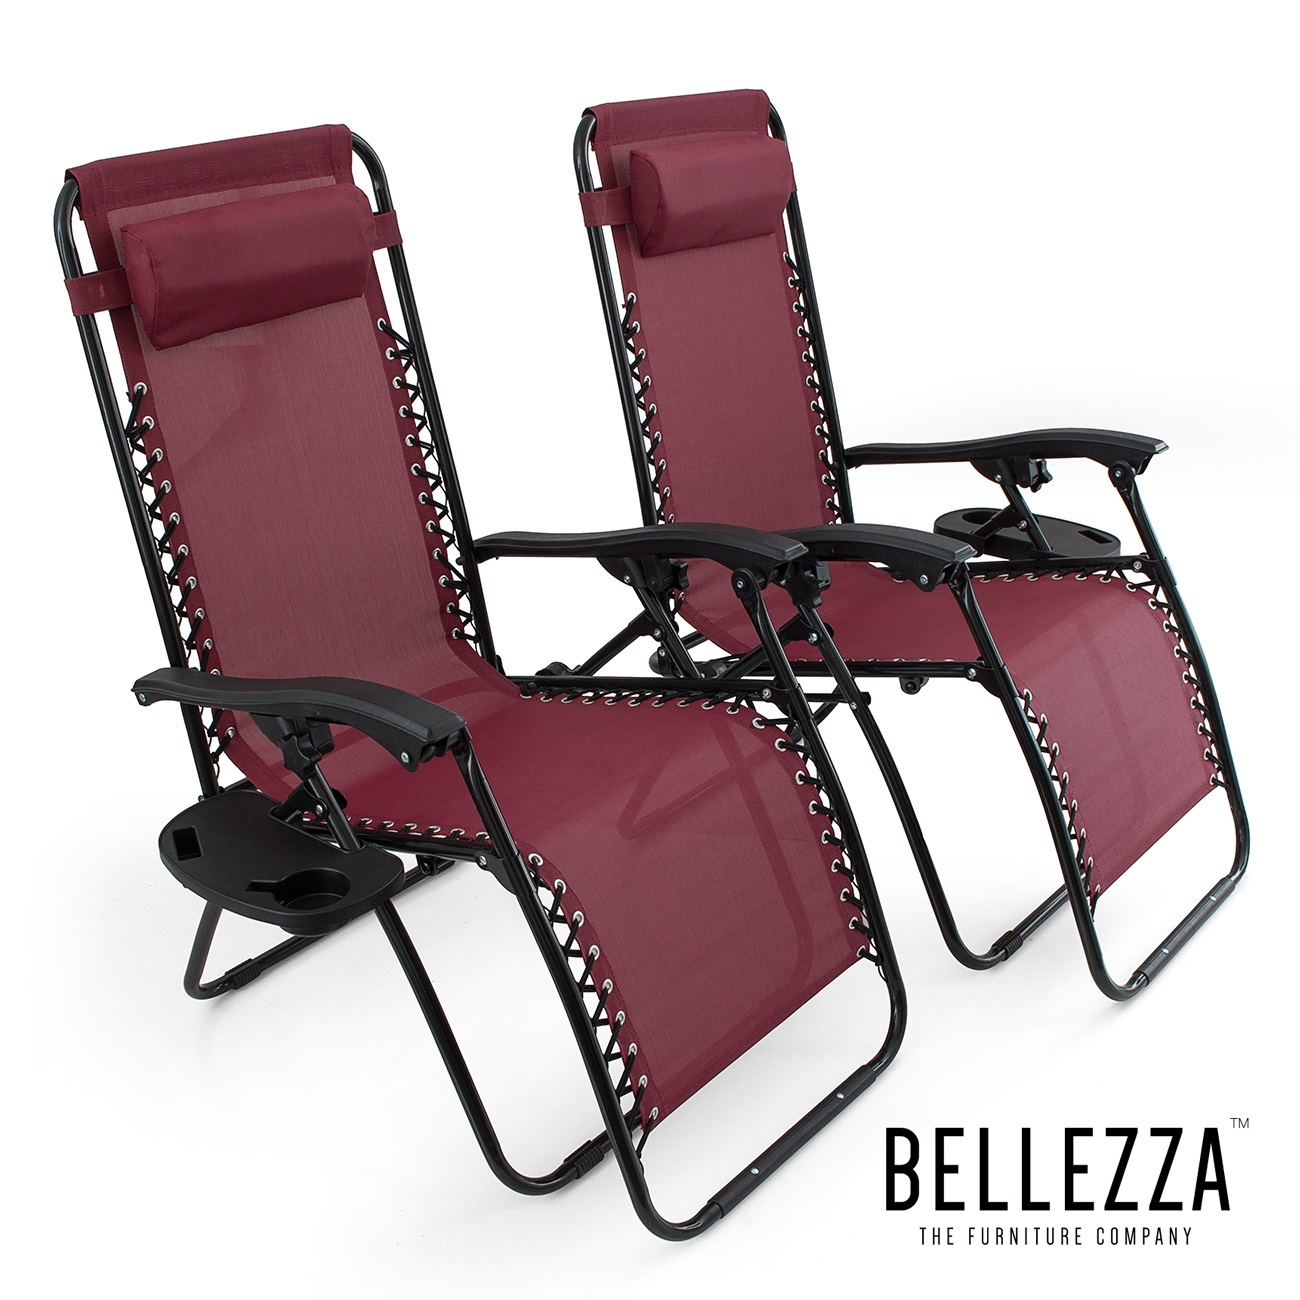 BELLEZE Burgundy Anti Gravity Chairs Set of 2 Adjustable Reclining Utility Tray Cup Holder Mobile Phone Slot